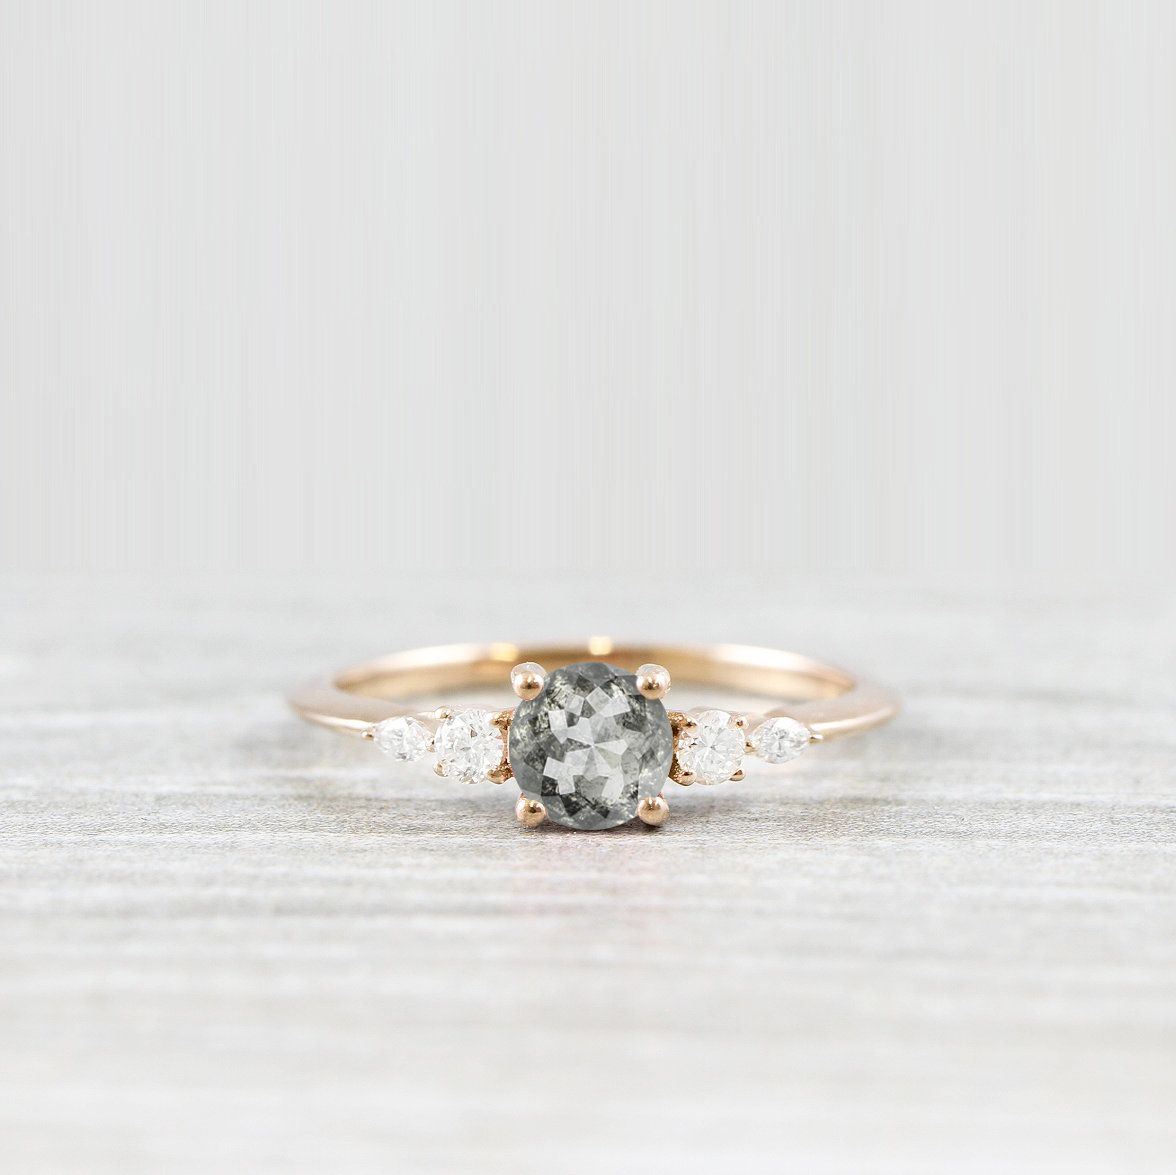 Photo of Salt and pepper diamond engagement 5 stone ring in rose/white/yellow gold handmade for her